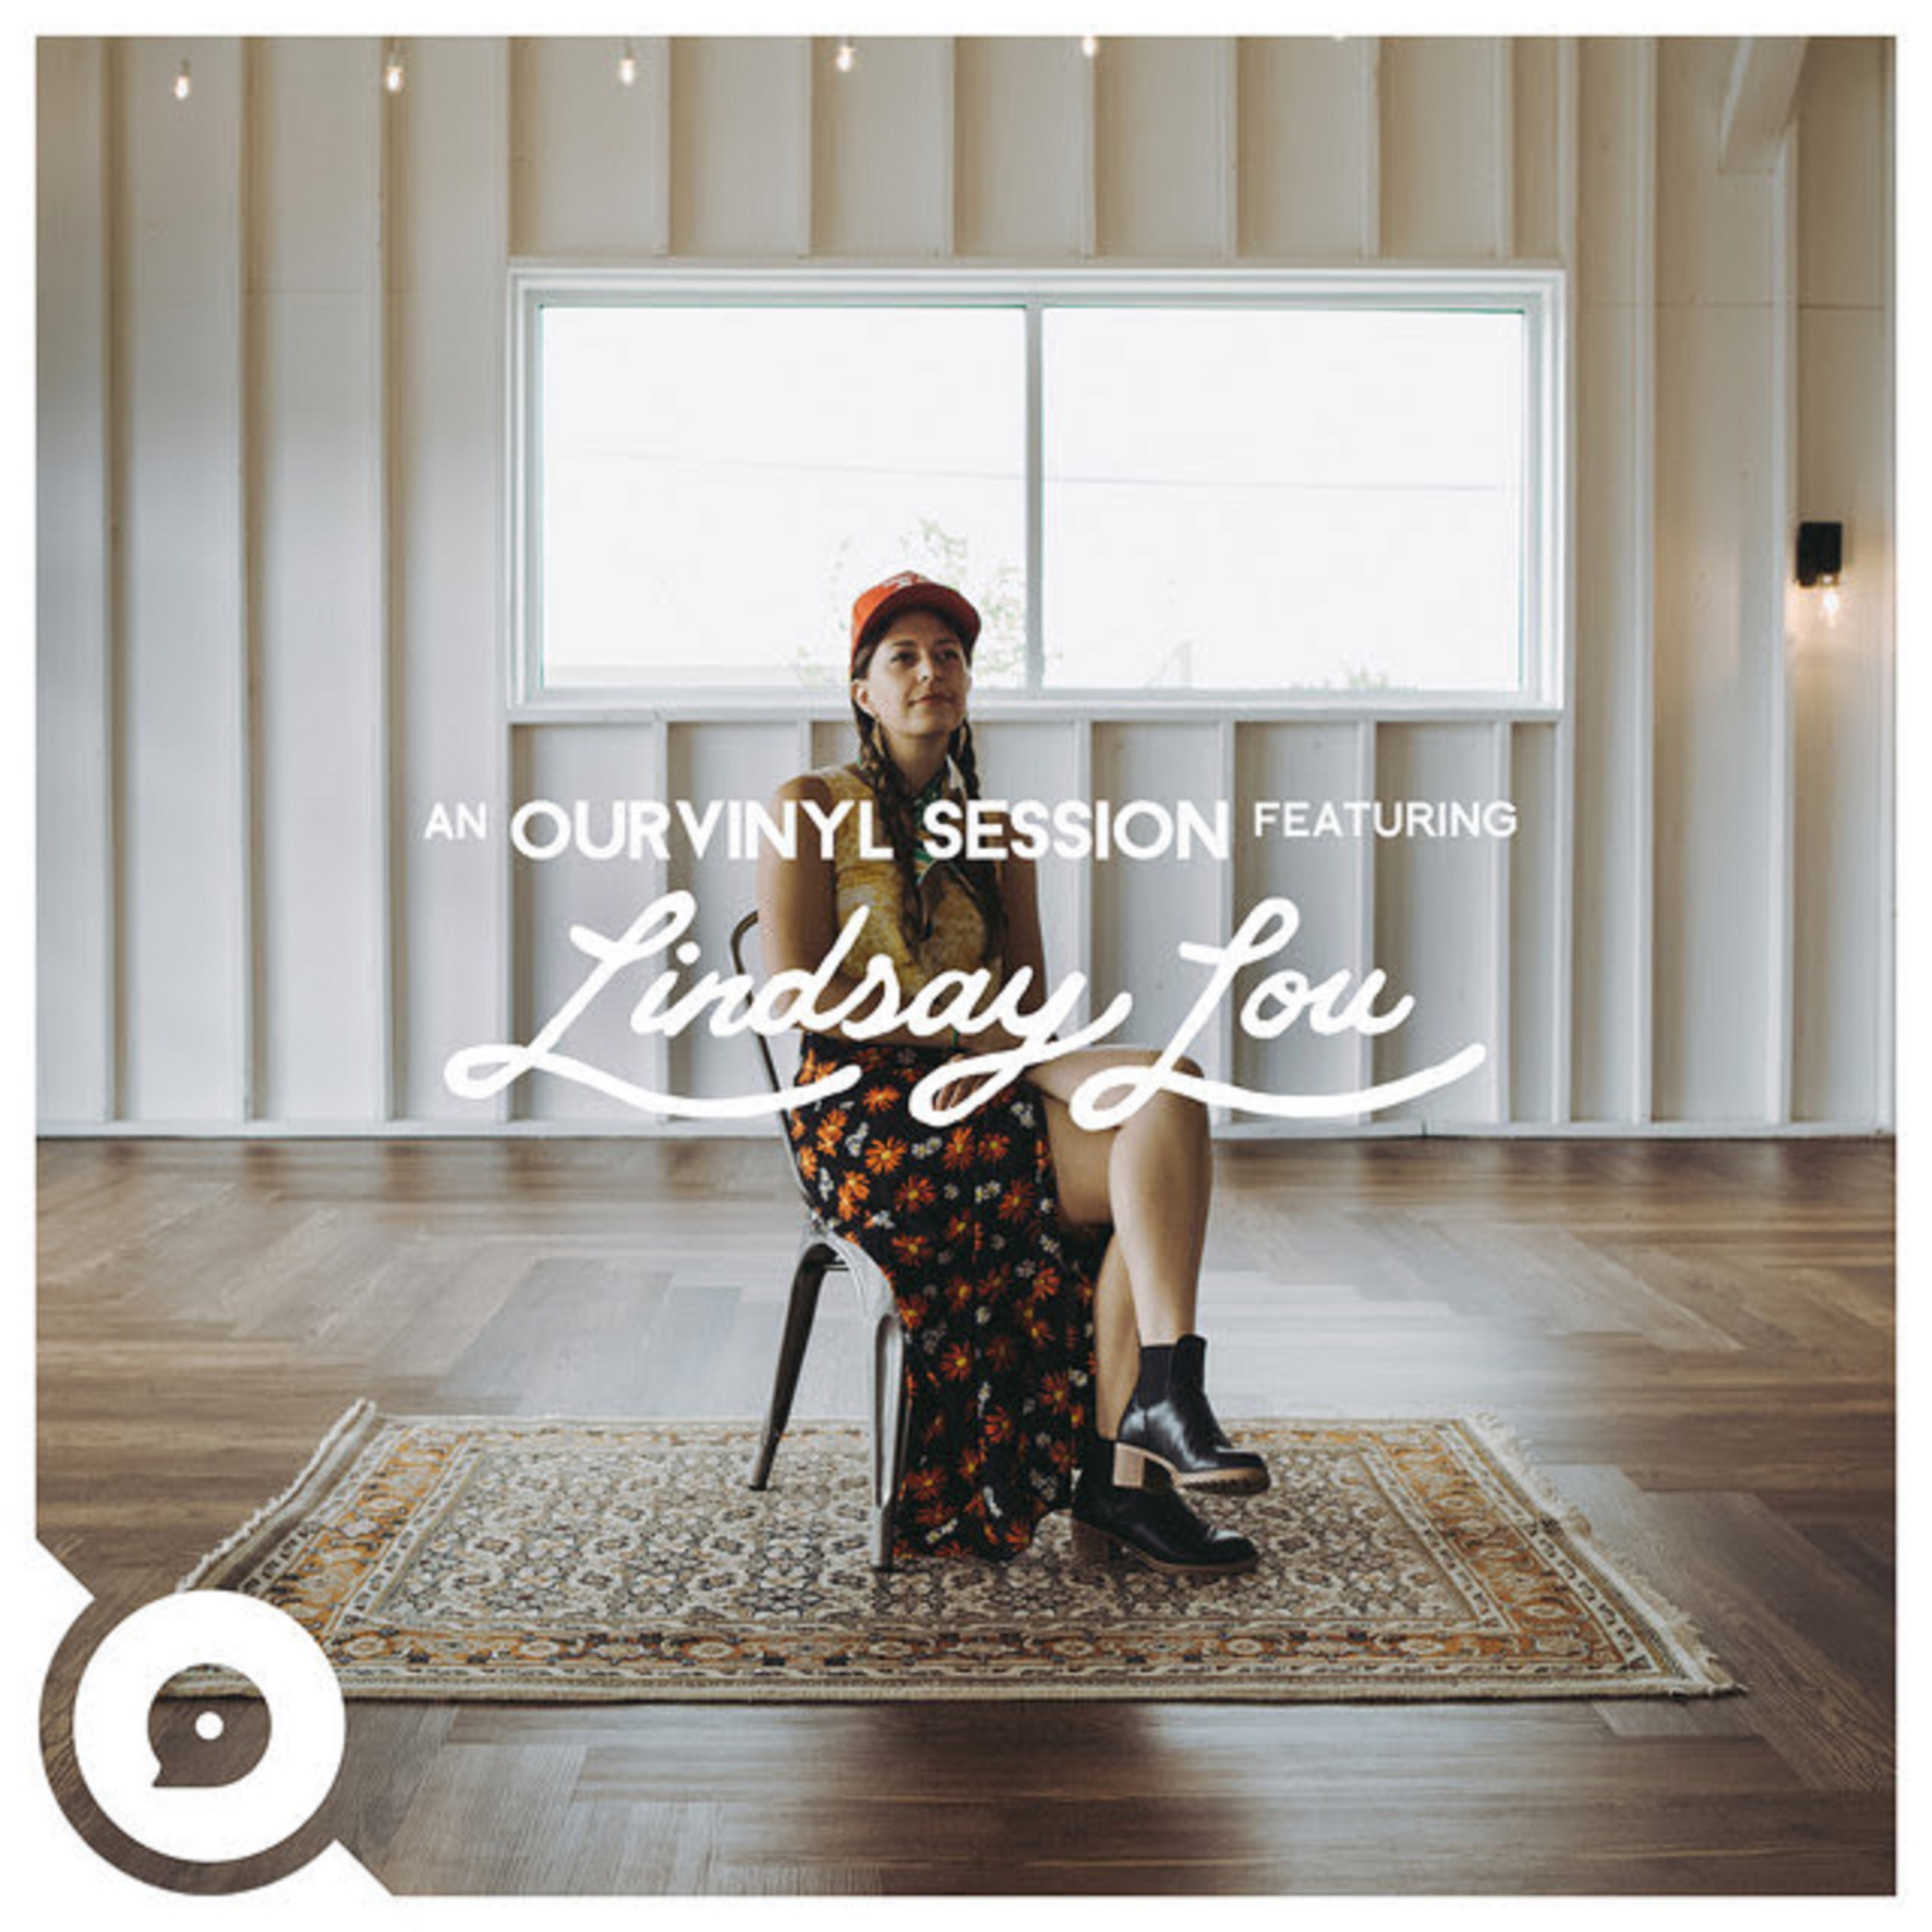 Lindsay Lou Releases New EP in Partnership with OurVinyl